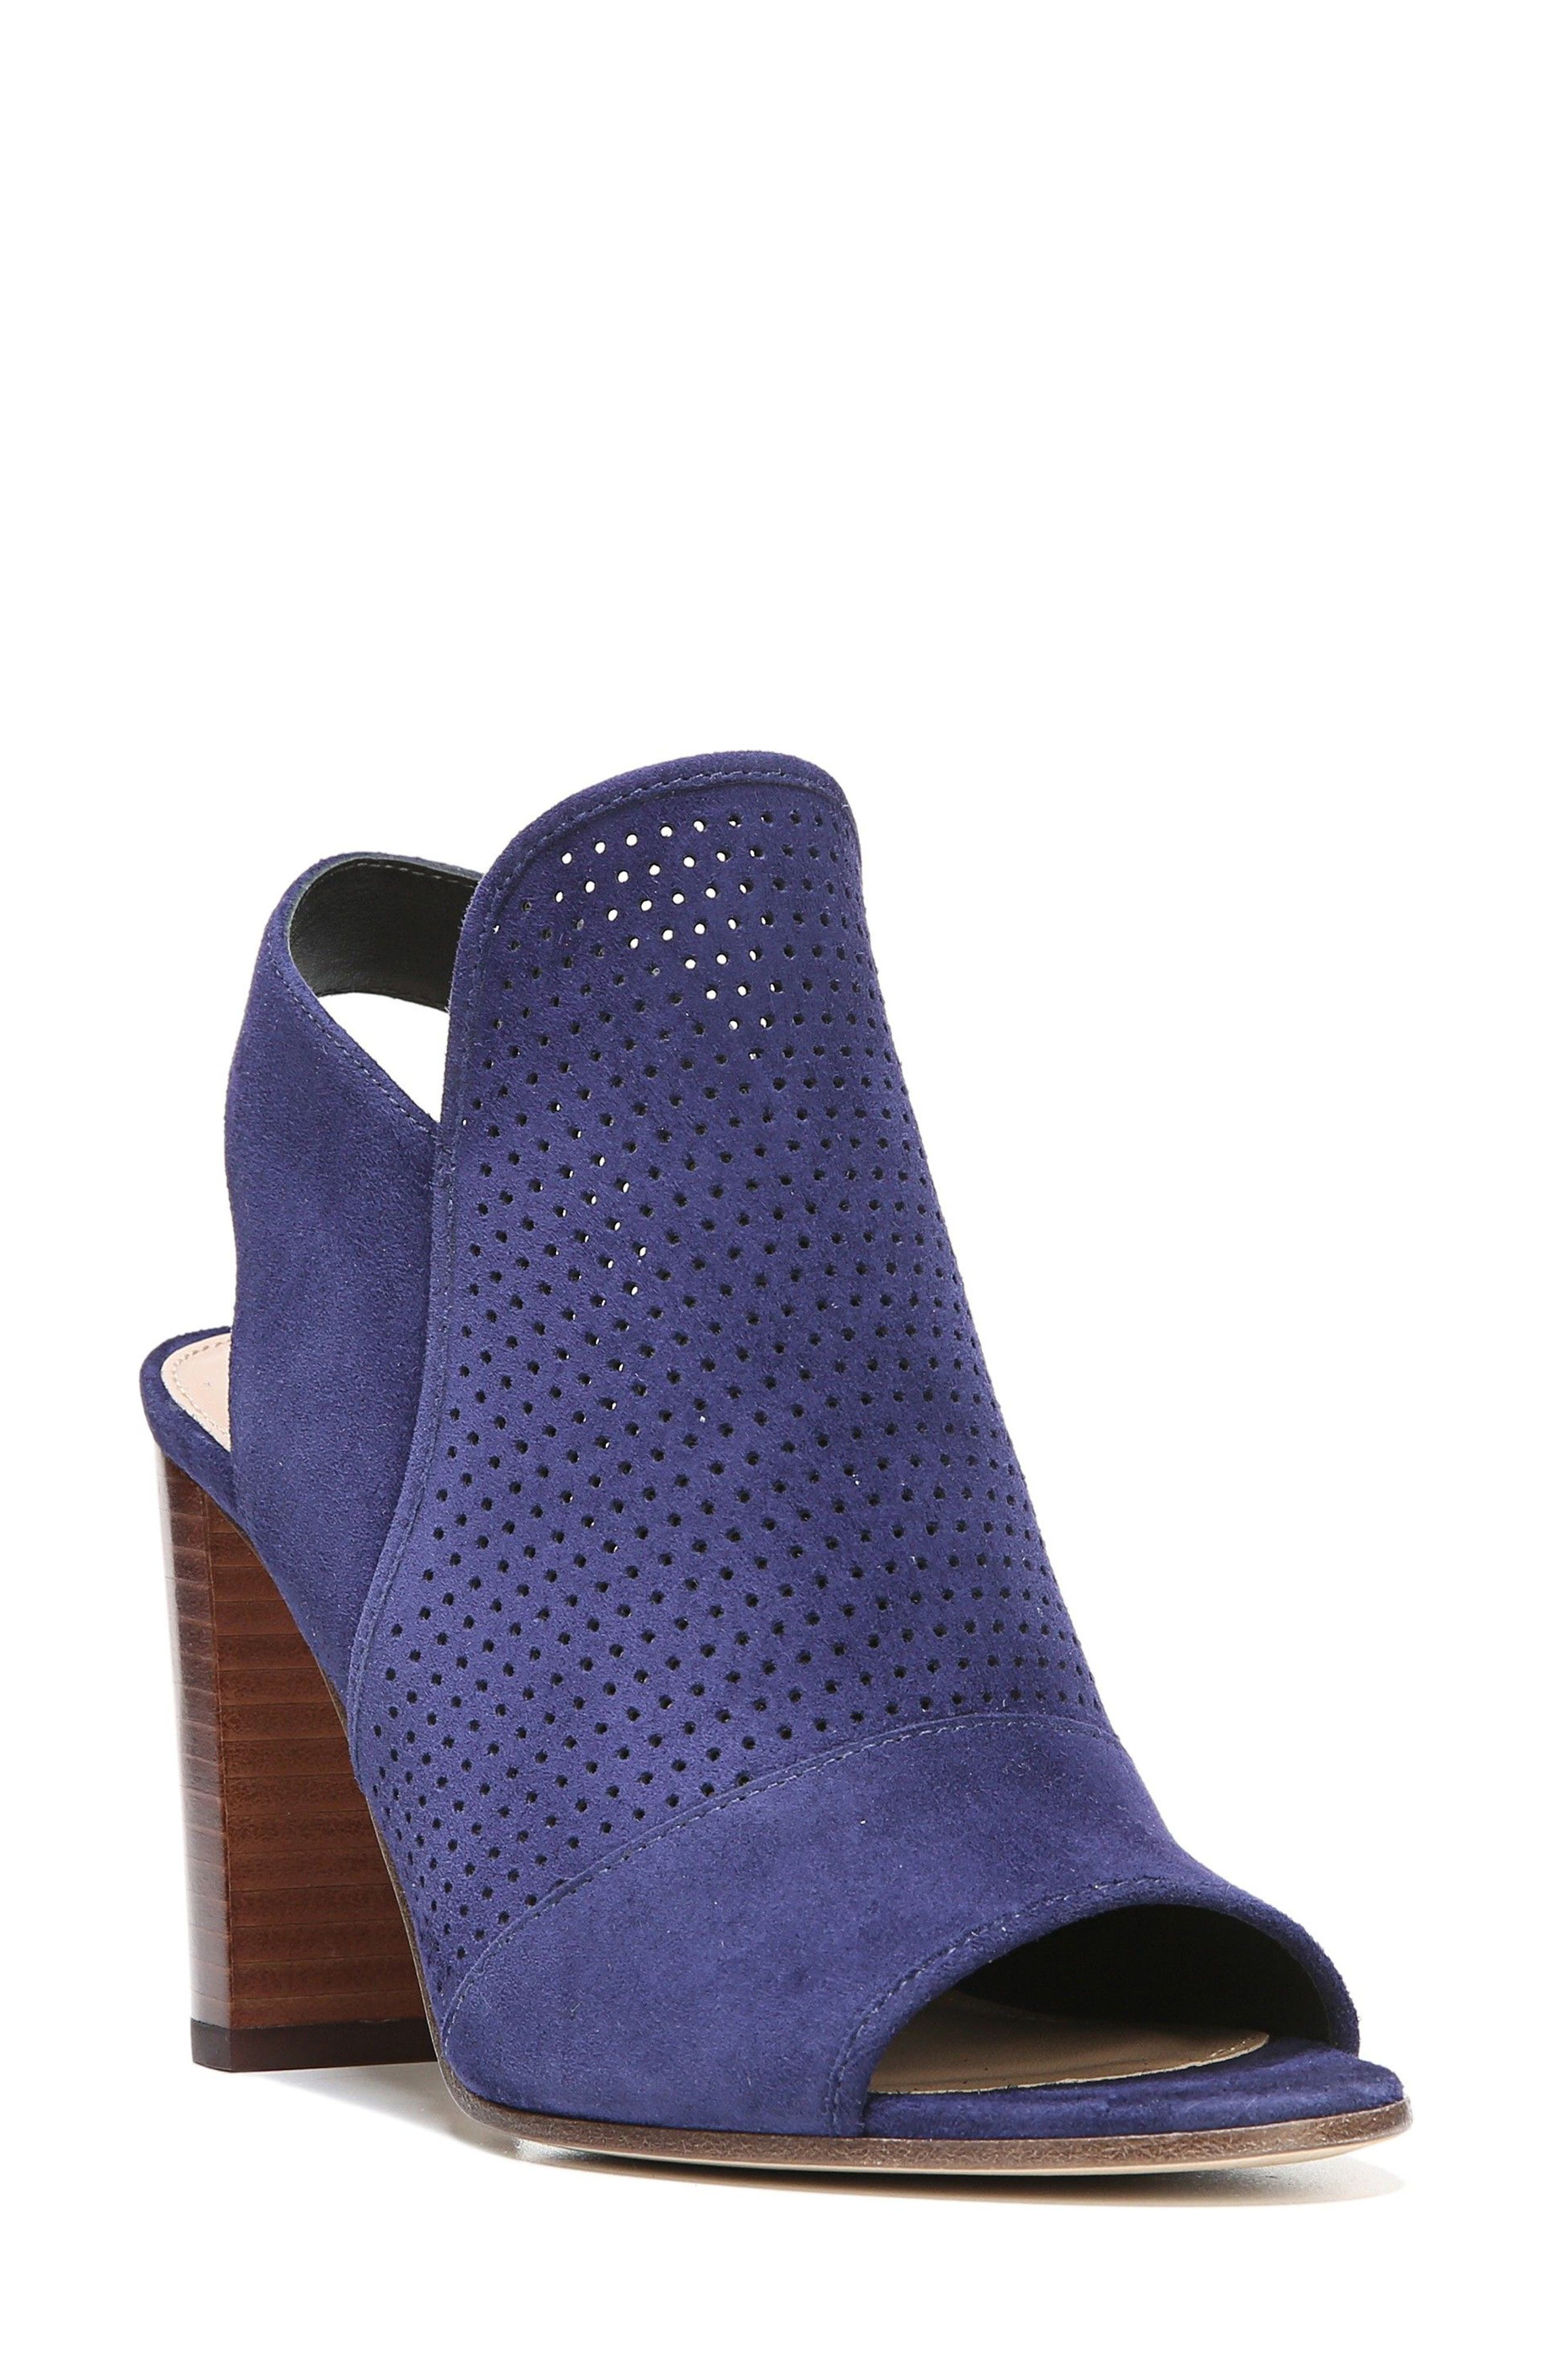 Gaze Block Heel Sandal,                             Main thumbnail 1, color,                             Marina Blue Suede